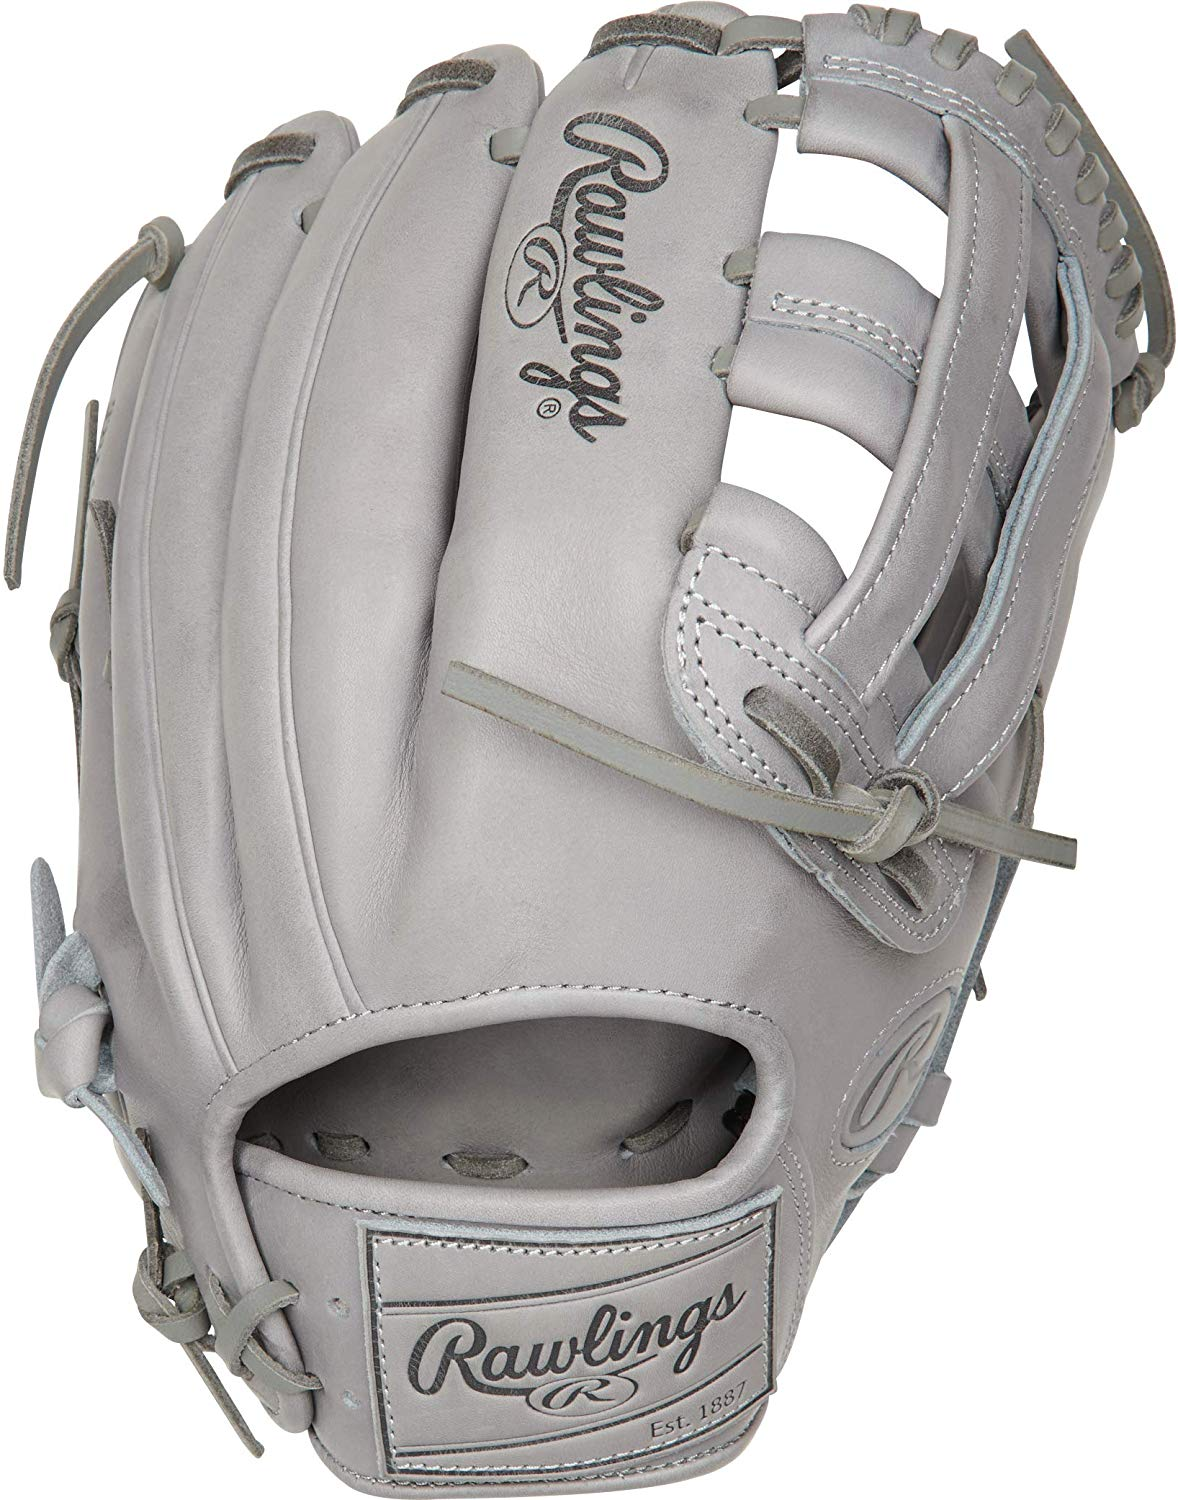 rawlings-pro-label-grey-baseball-glove-12-25-right-hand-throw PROKB17-6G-RightHandThrow Rawlings 083321691393 <p>12.25 pattern Limited Edition Kris Bryant Pattern Indent Stamping On Shell